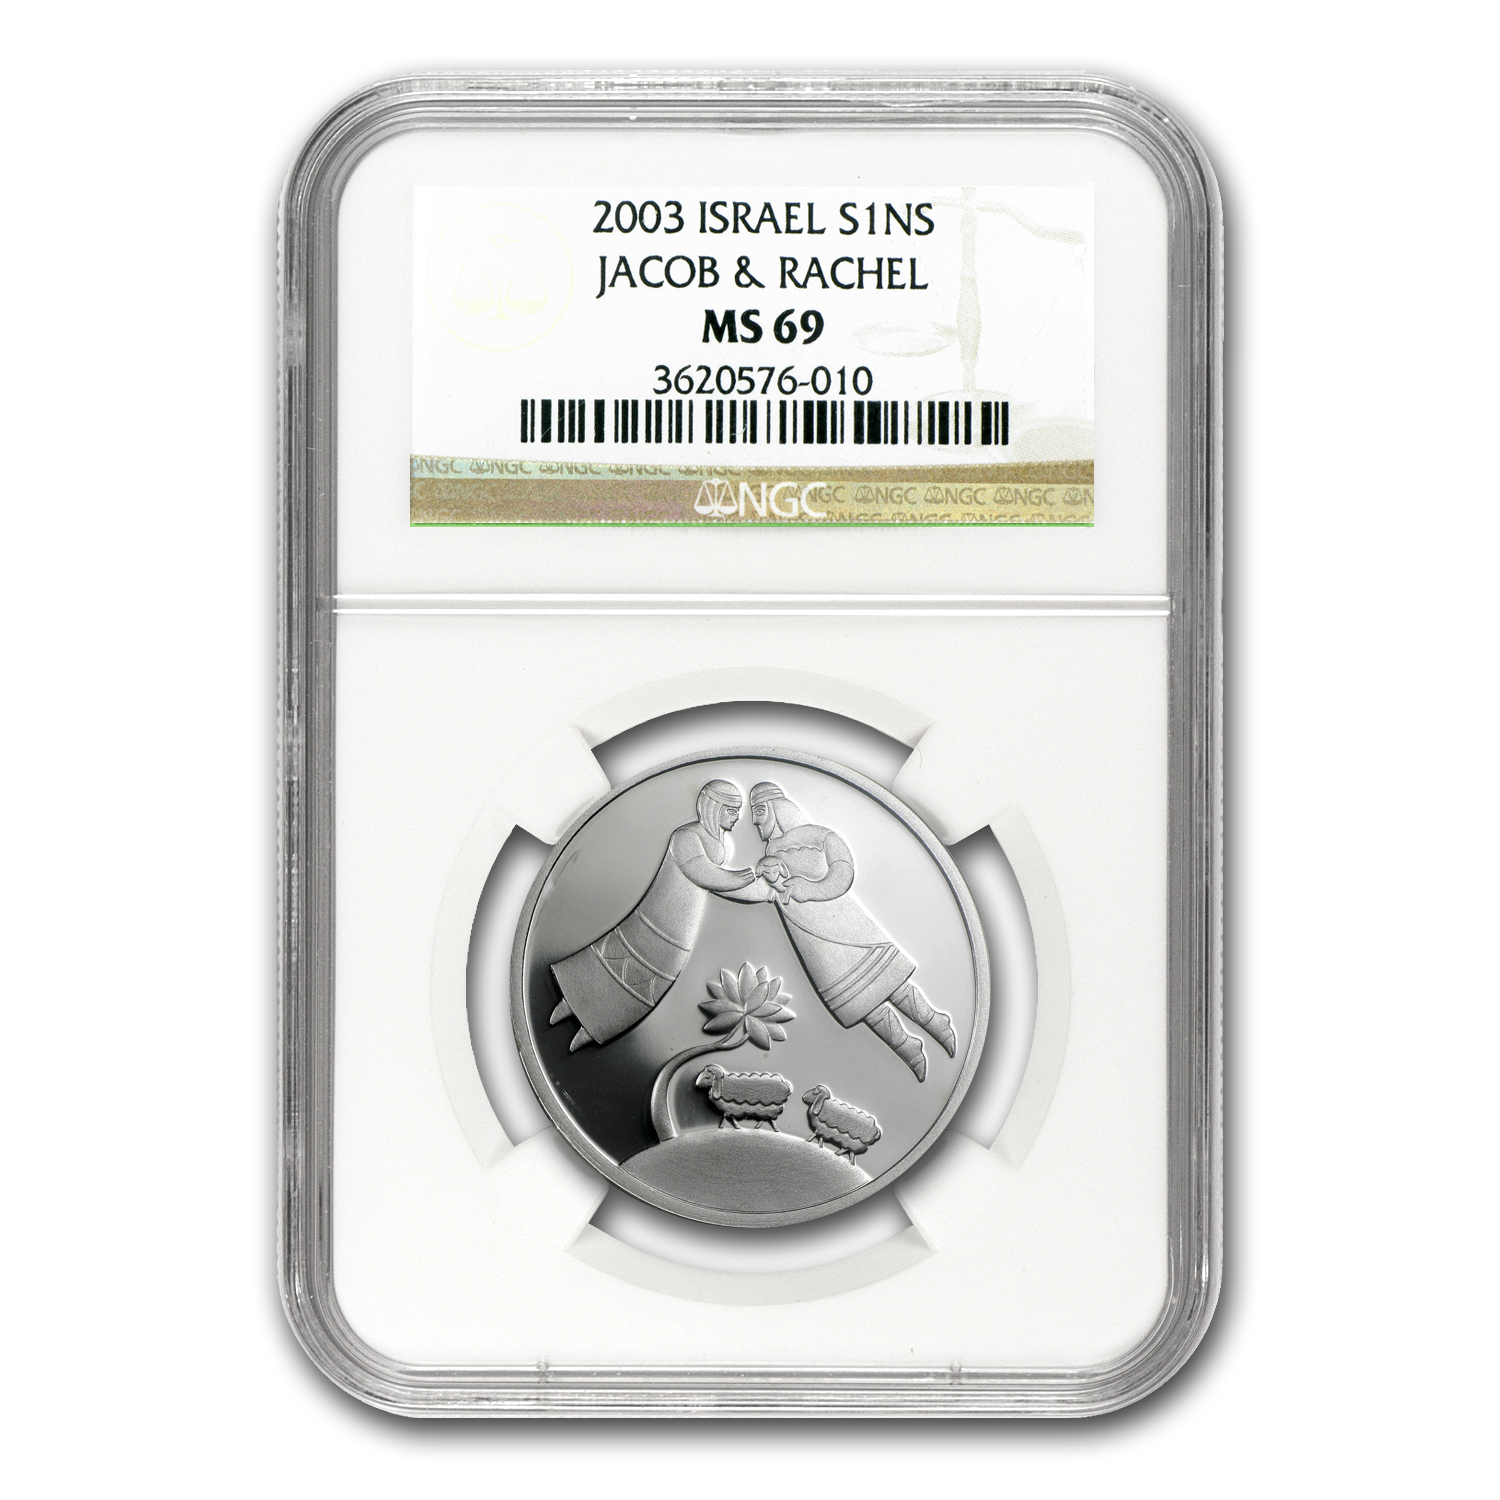 2003 Israel Silver 1 NIS Jacob and Rachel MS-69 NGC